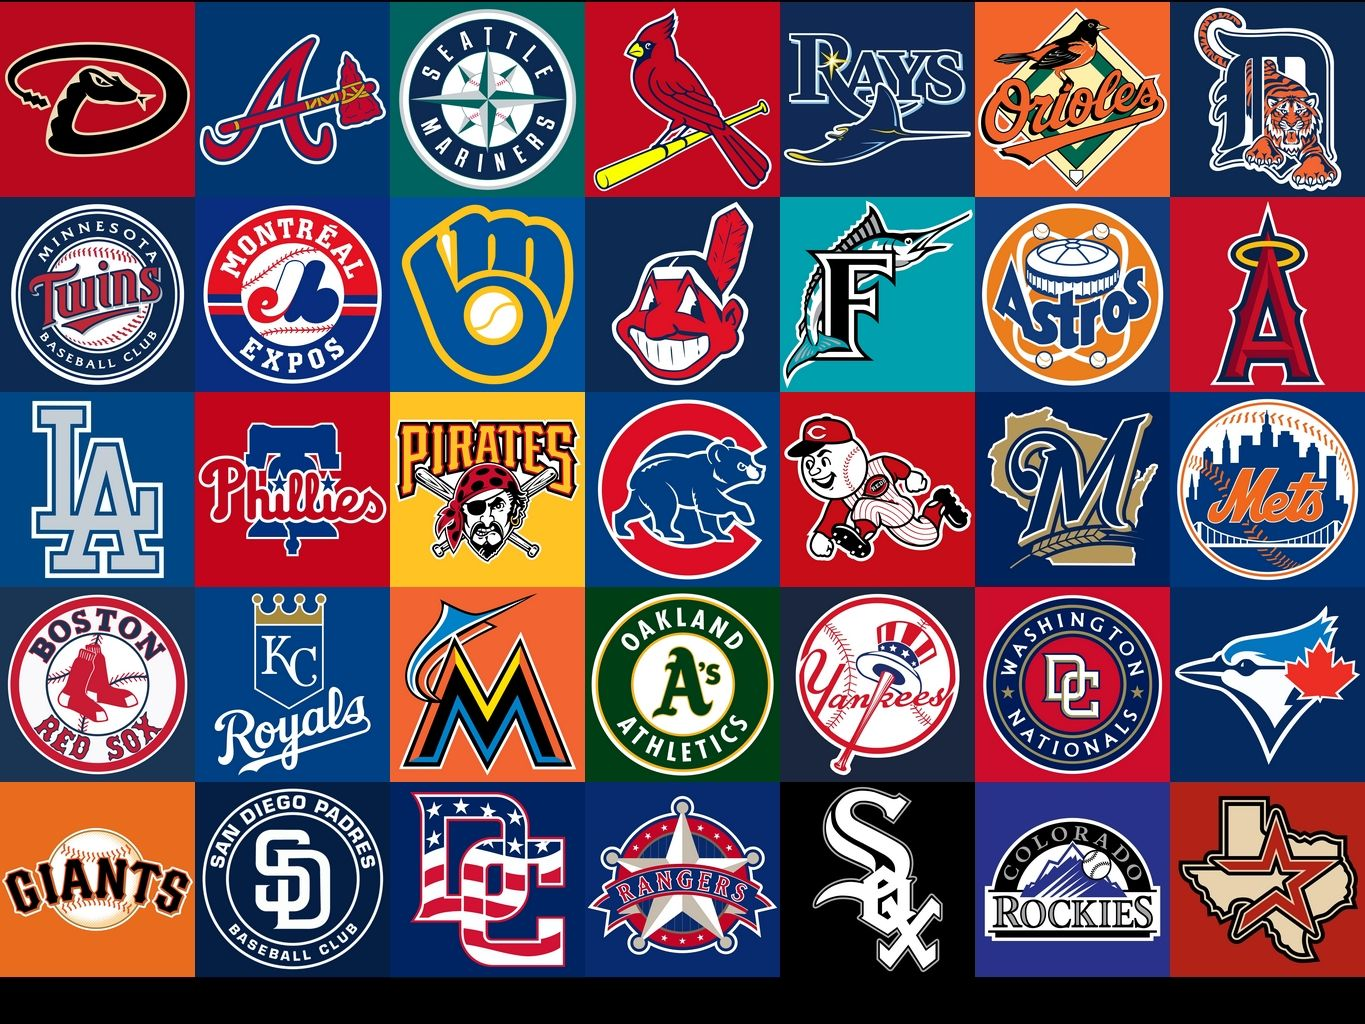 Who is your favorite team in the majors? Base ball